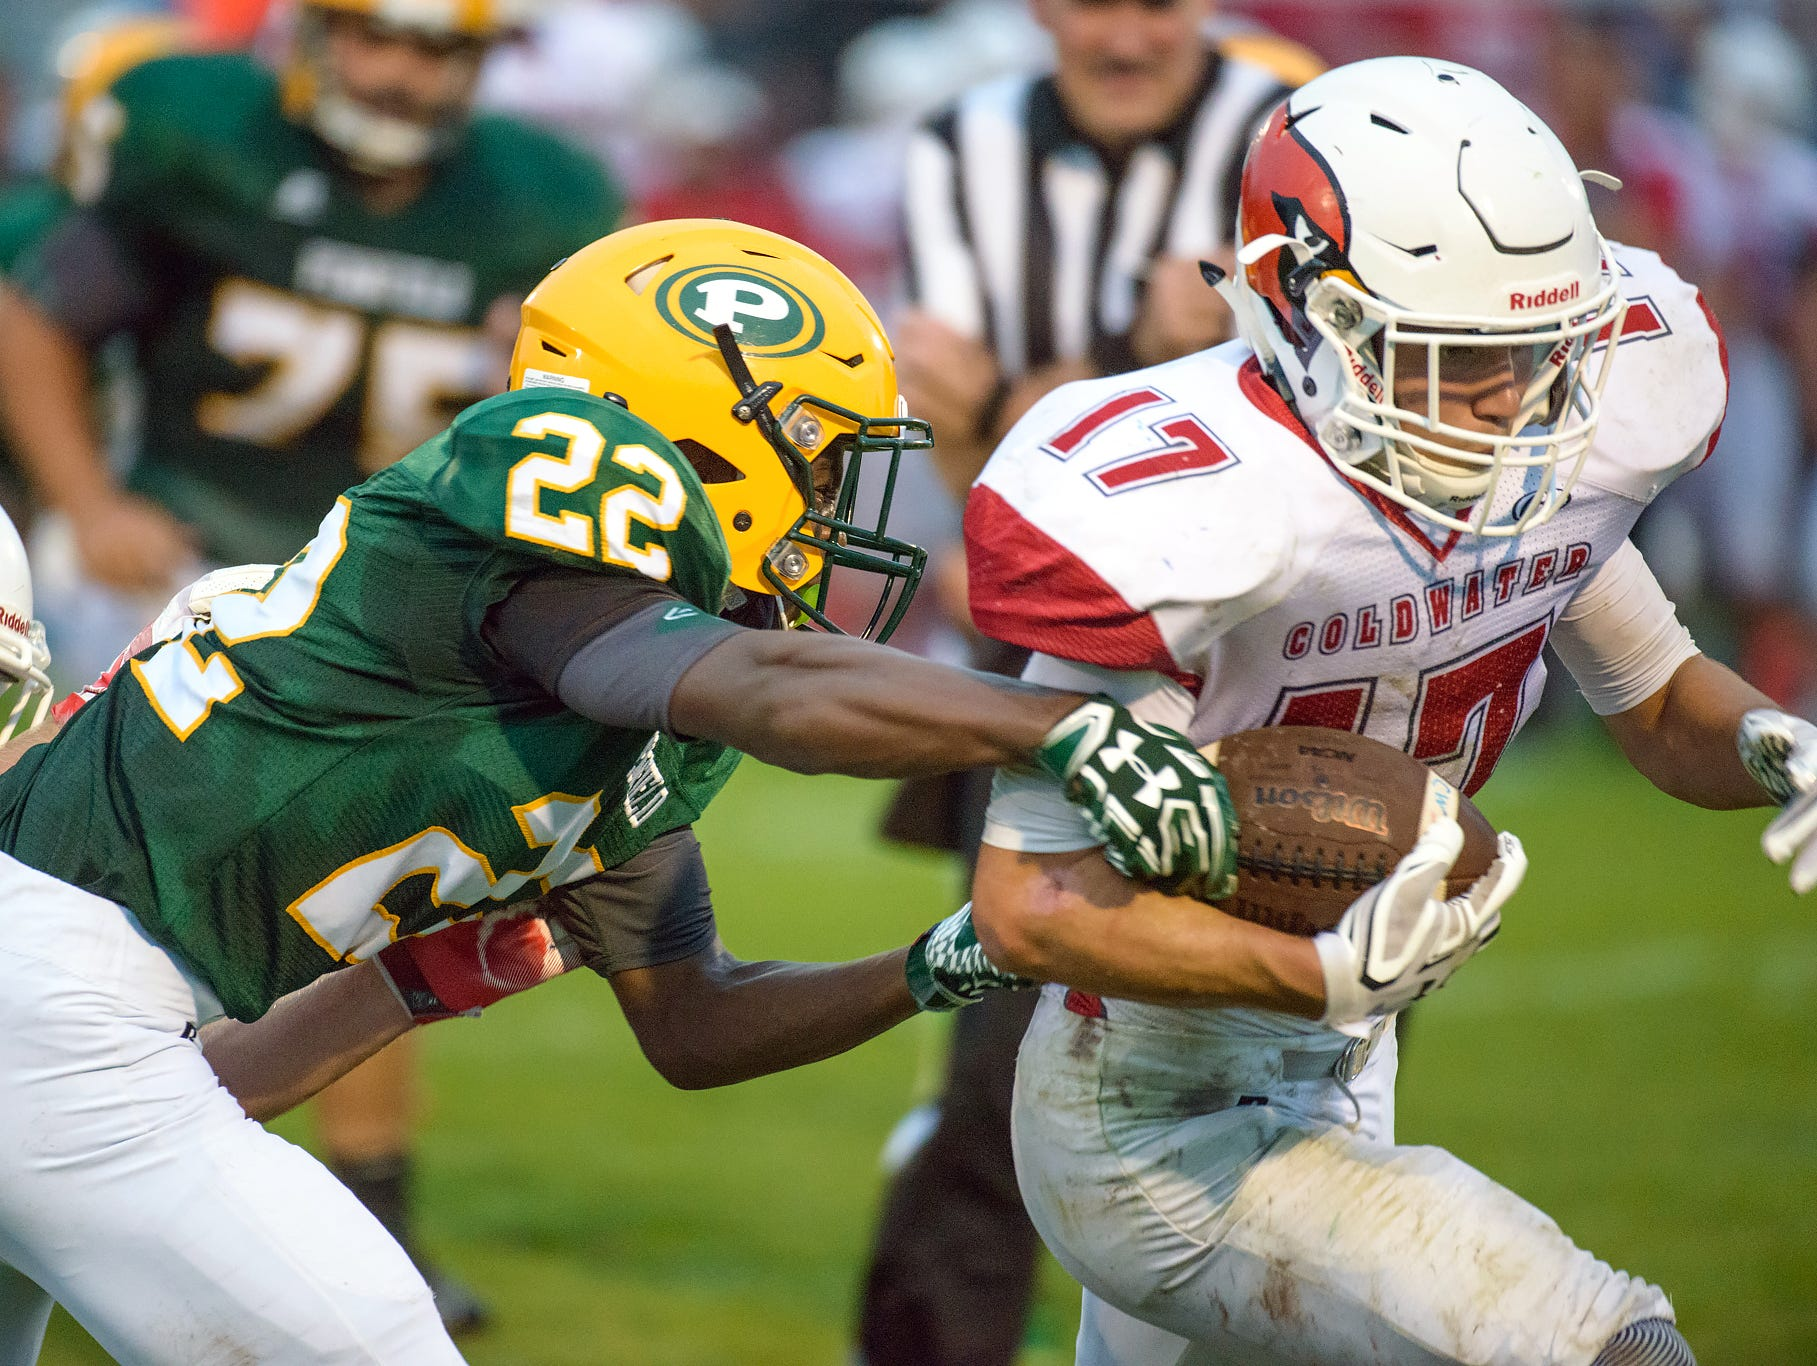 Pennfield's Kaleb Little (22) works to force a fumble on Cardinal running back Joey Severn (17) late in the second quarter of play Friday night.